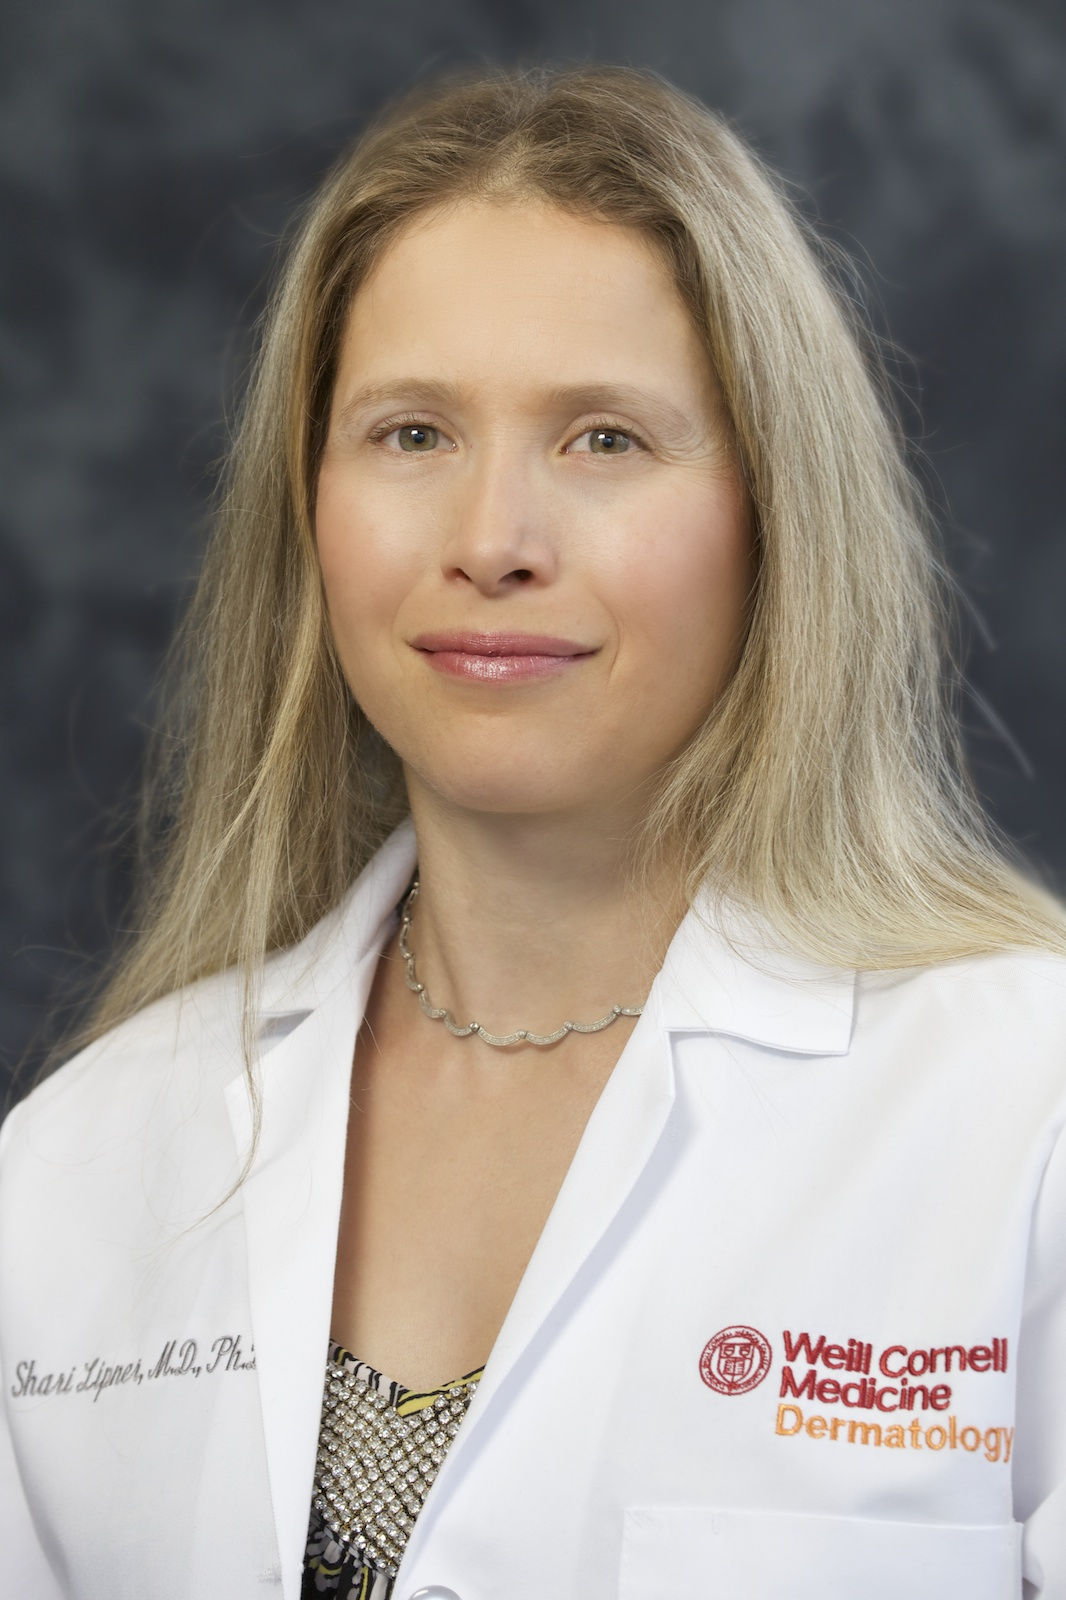 Shari Lipner, M.D., Ph.D.